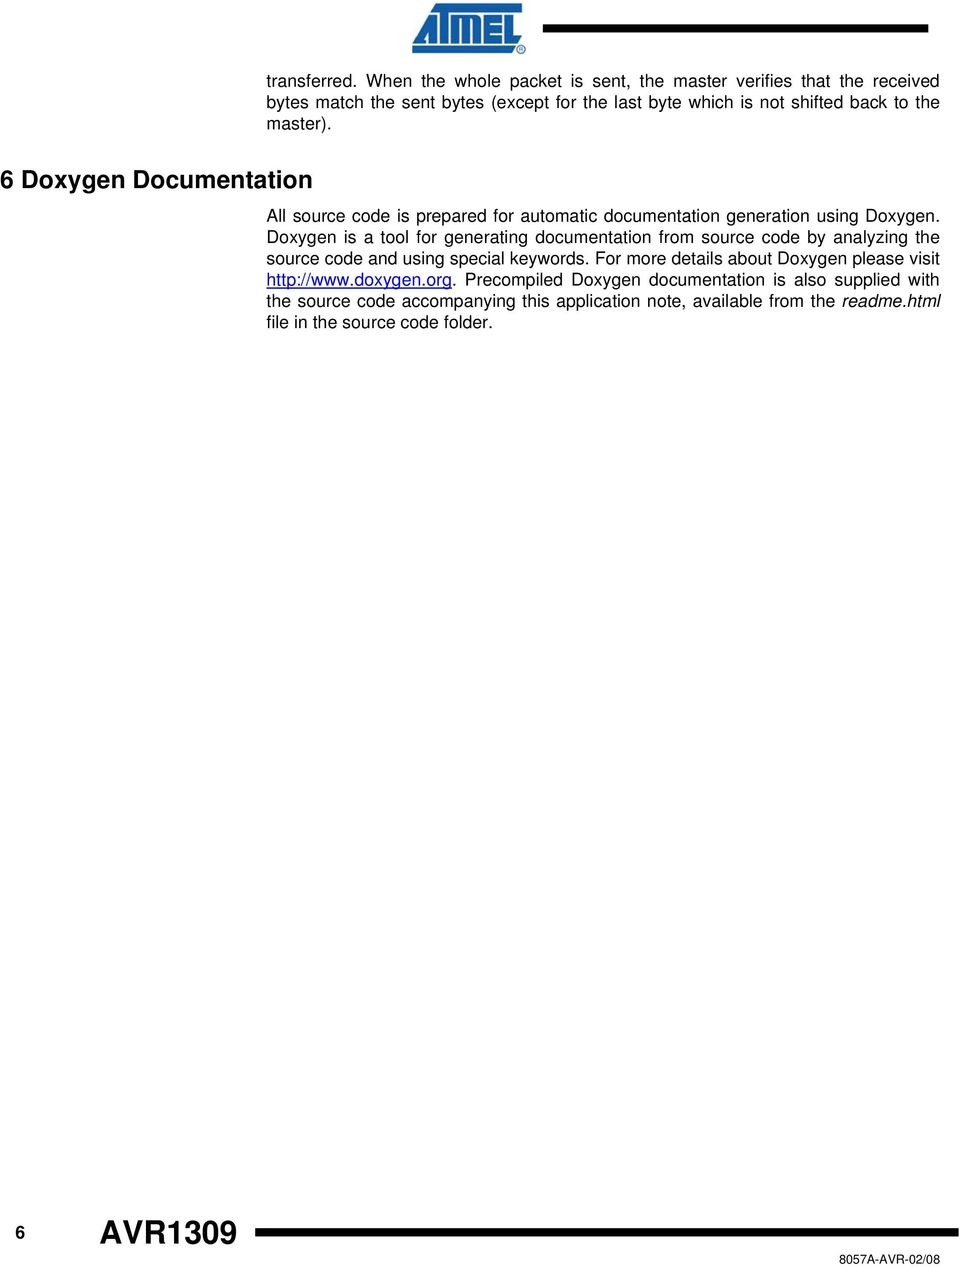 6 Doxygen Documentation All source code is prepared for automatic documentation generation using Doxygen.